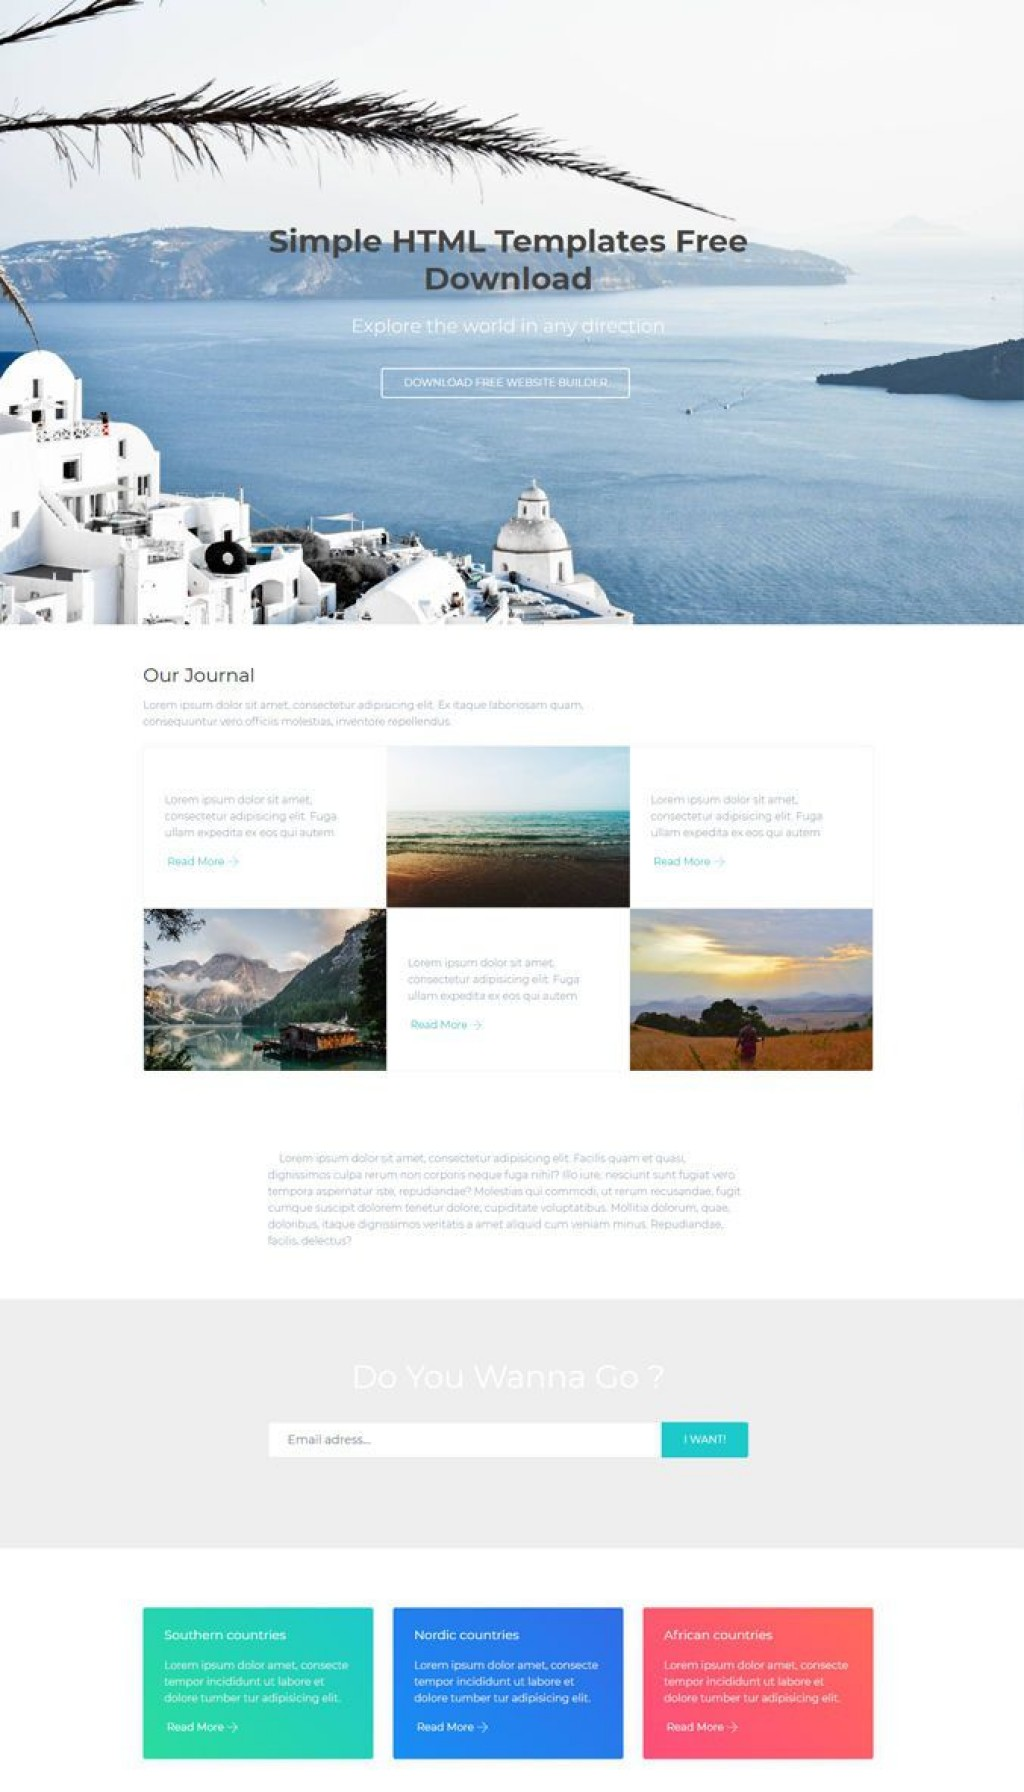 008 Surprising Simple Web Page Template Free Download Idea  One Website Html With CsLarge